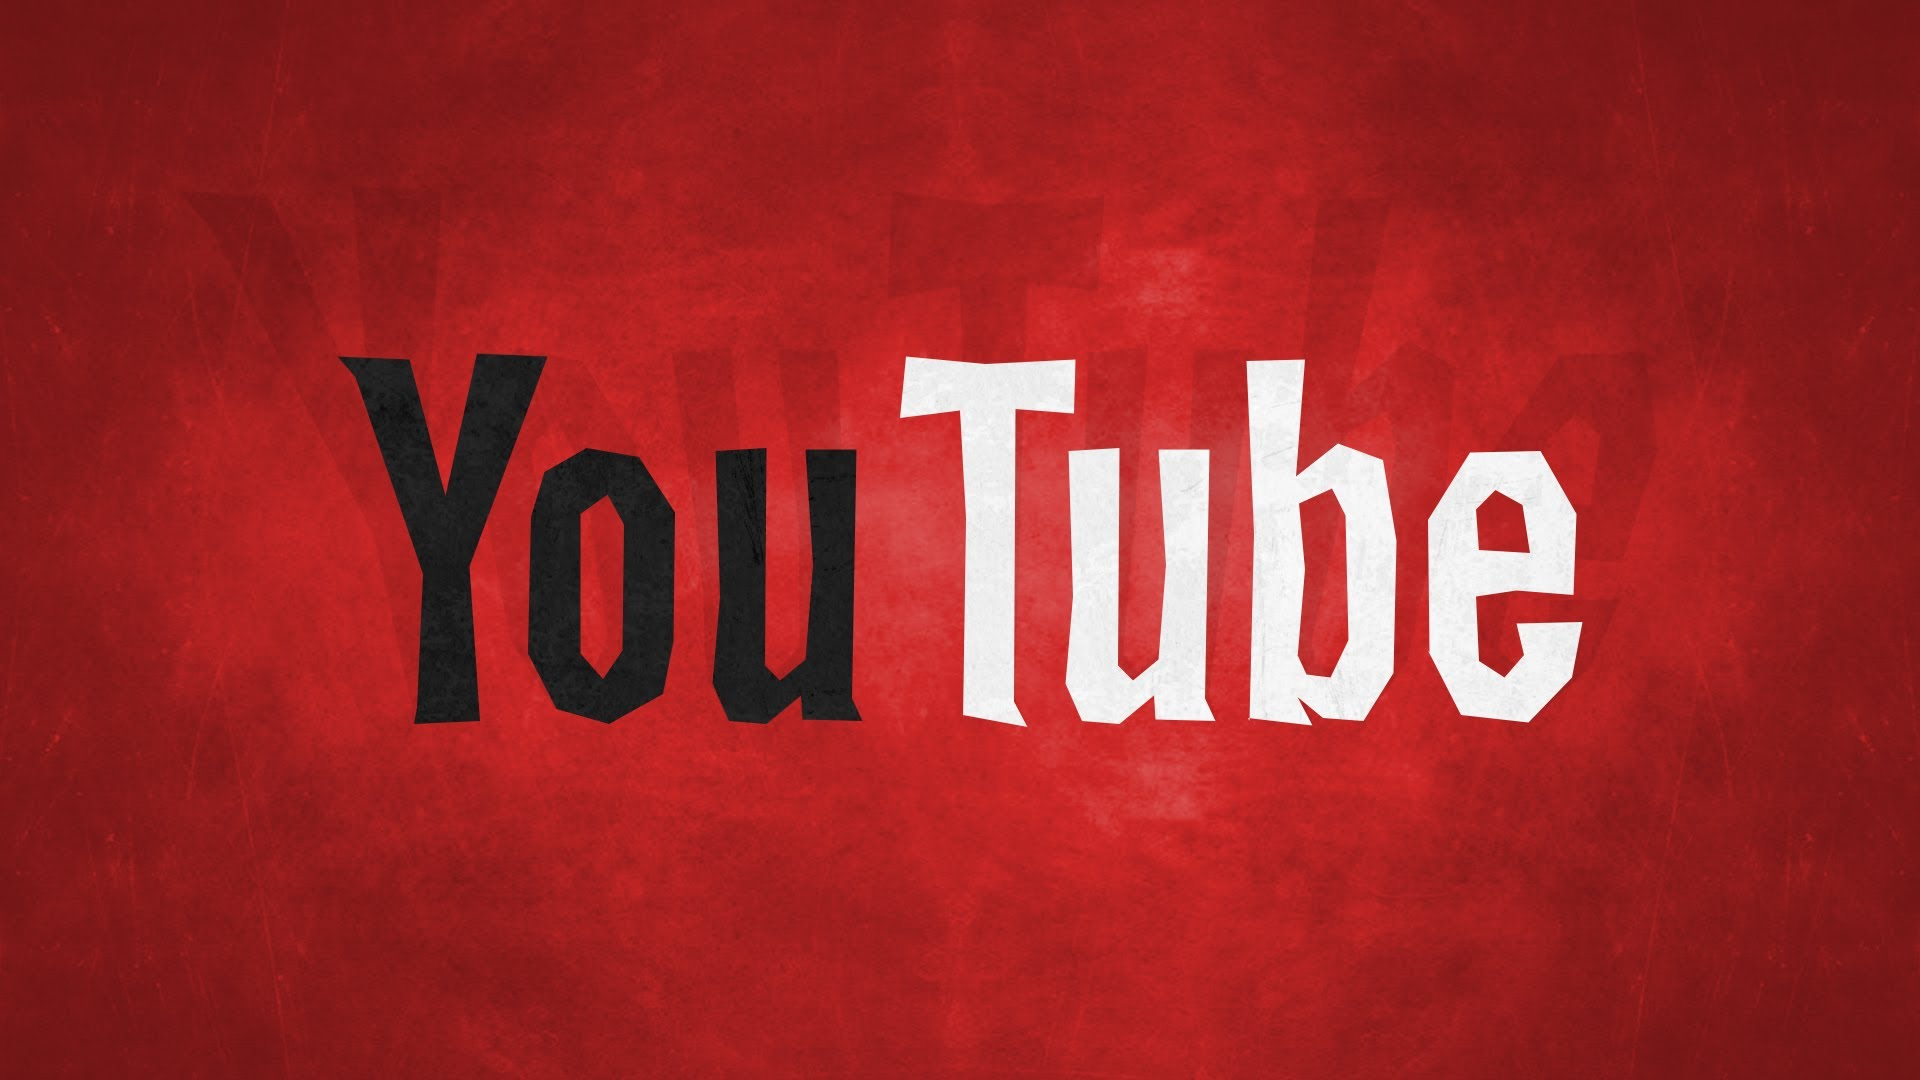 HD Wallpapers For Youtube